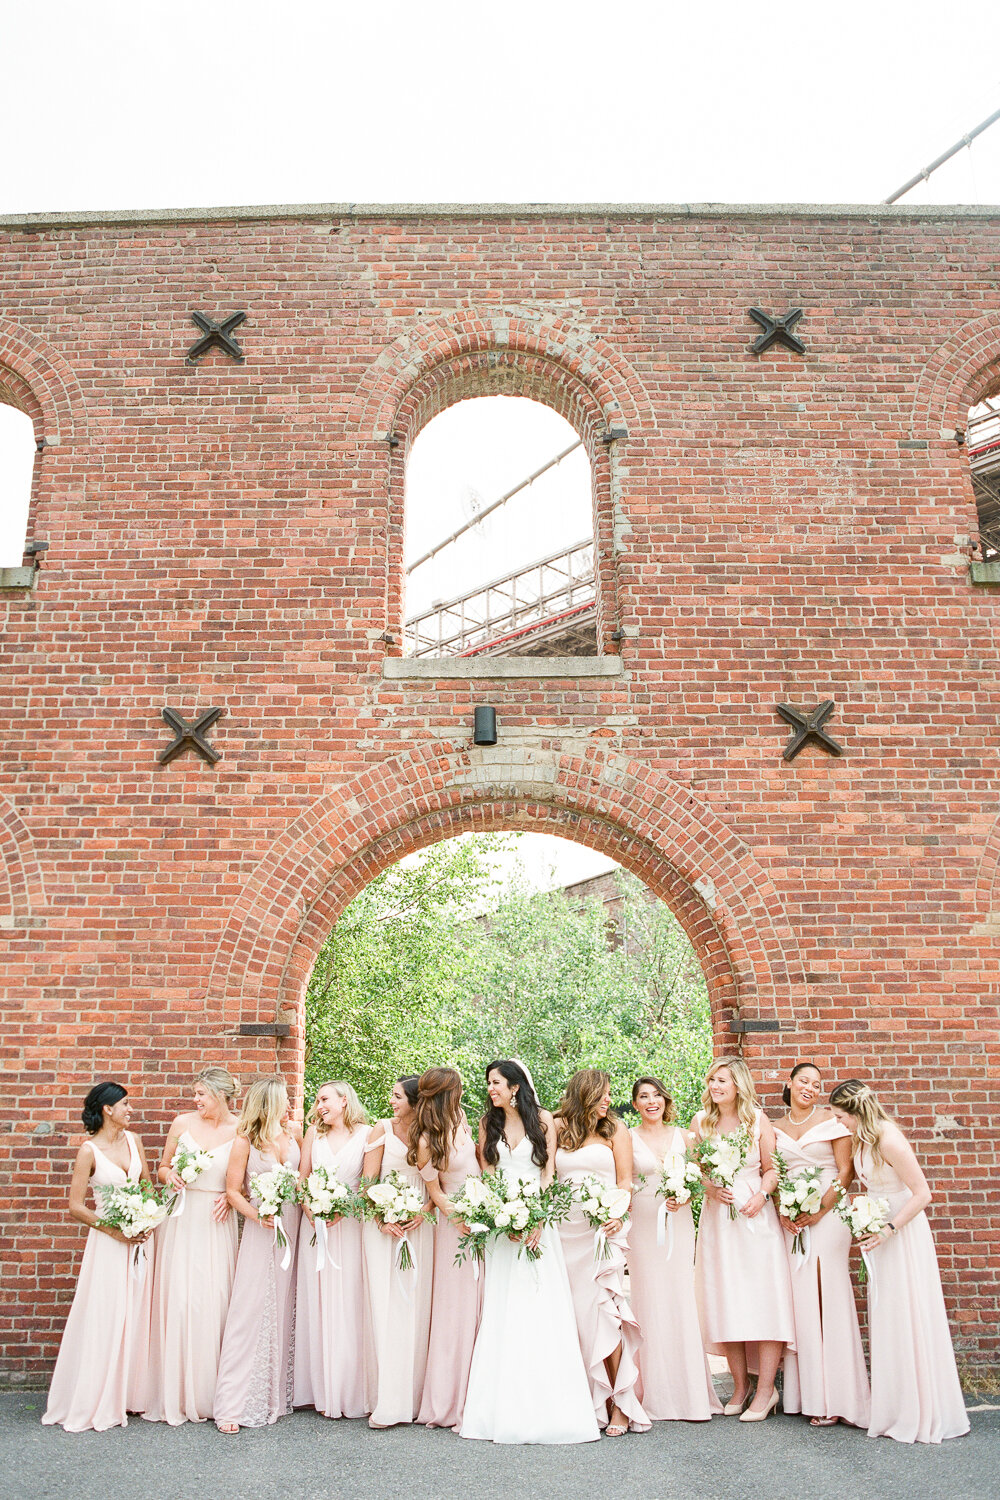 Bridal Party Photos at St. Anne's Warehouse in Brooklyn